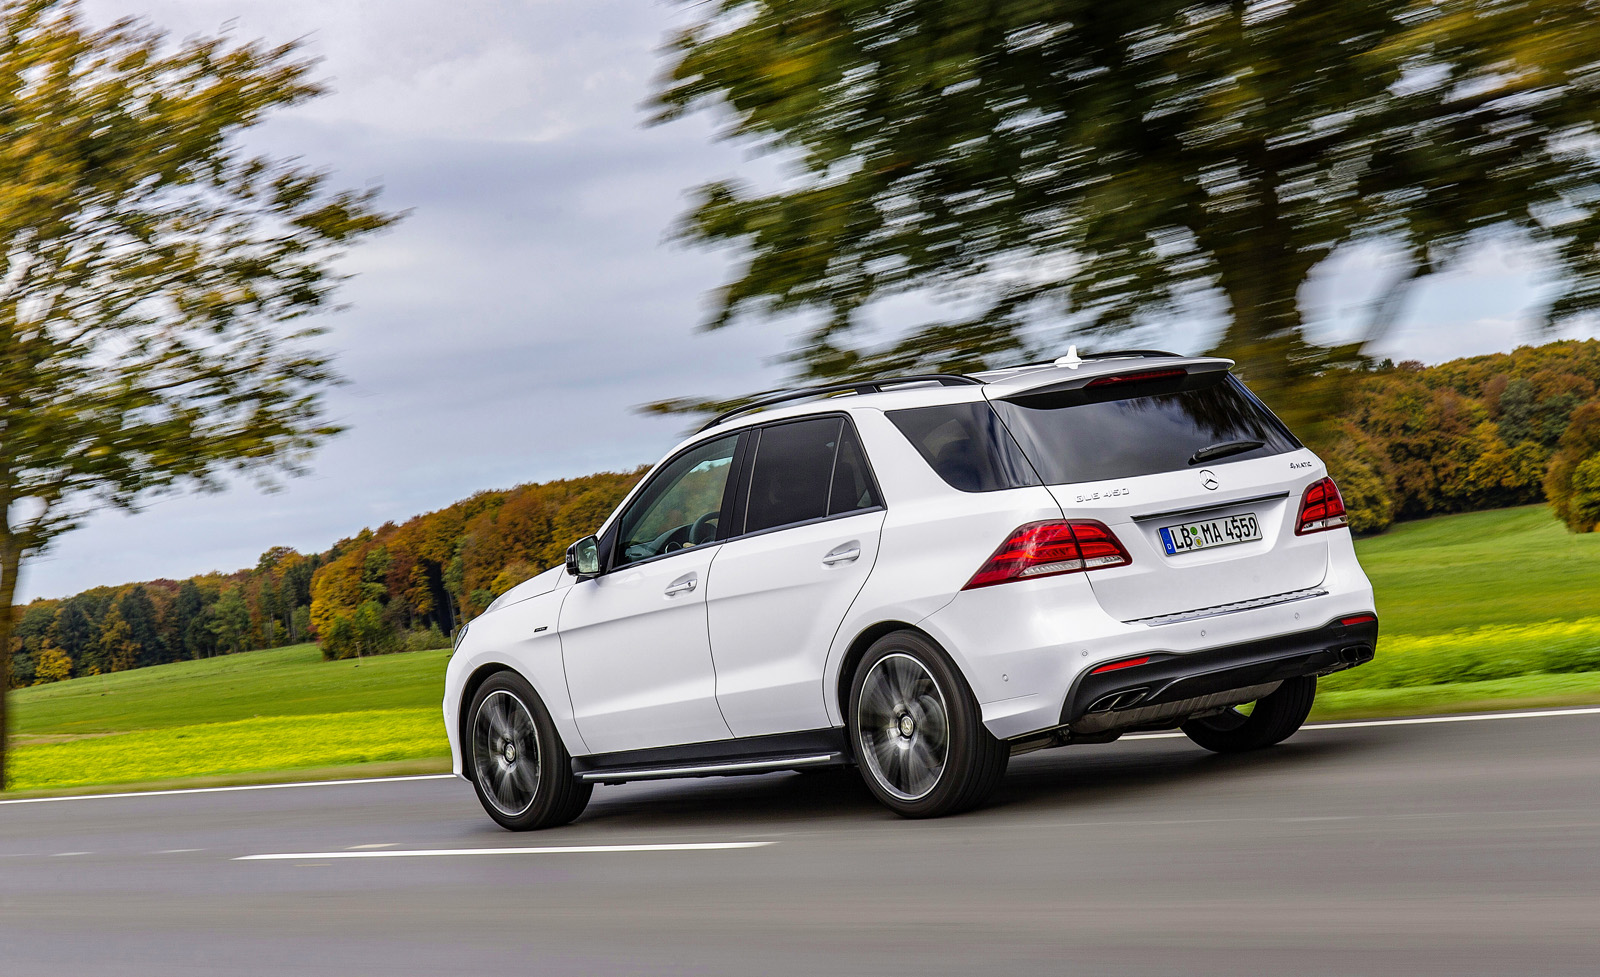 http://www.autoguide.com/blog/wp-content/gallery/2016-mercedes-benz-gle-450-amg-4matic/2016-Mercedes-Benz-GLE-450-AMG-11.jpg